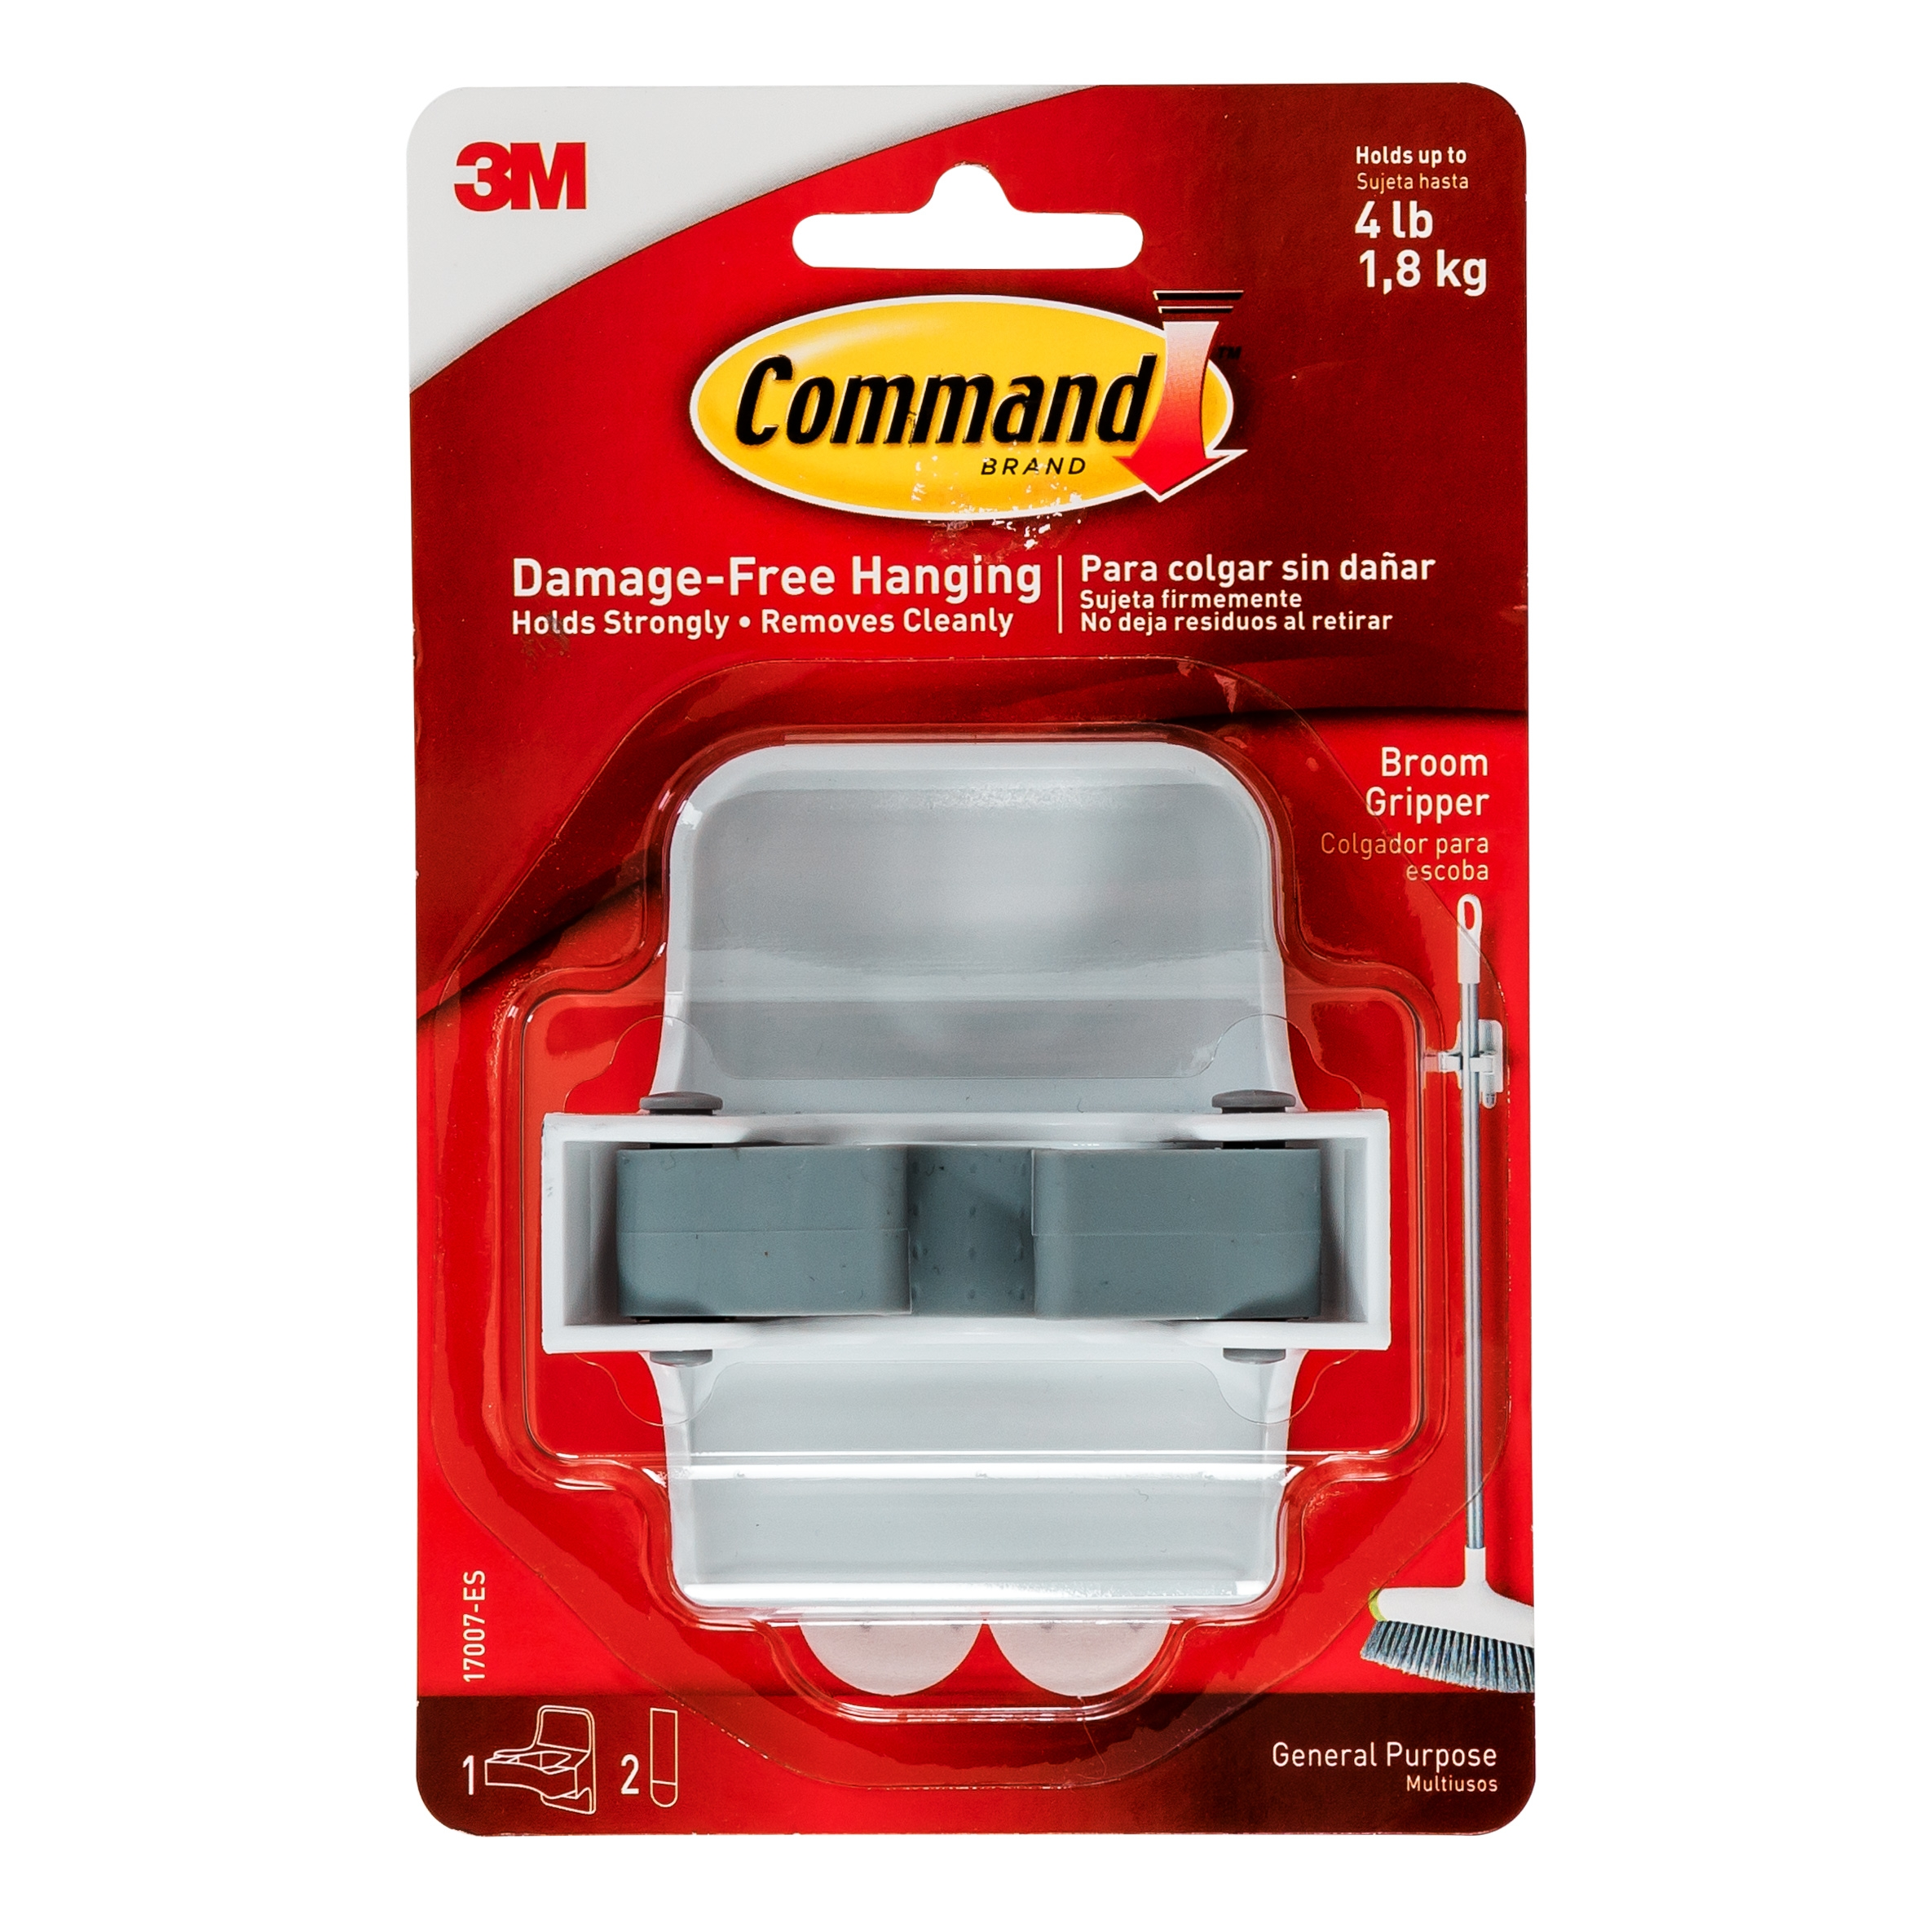 Command Broom Gripper From Storage Box